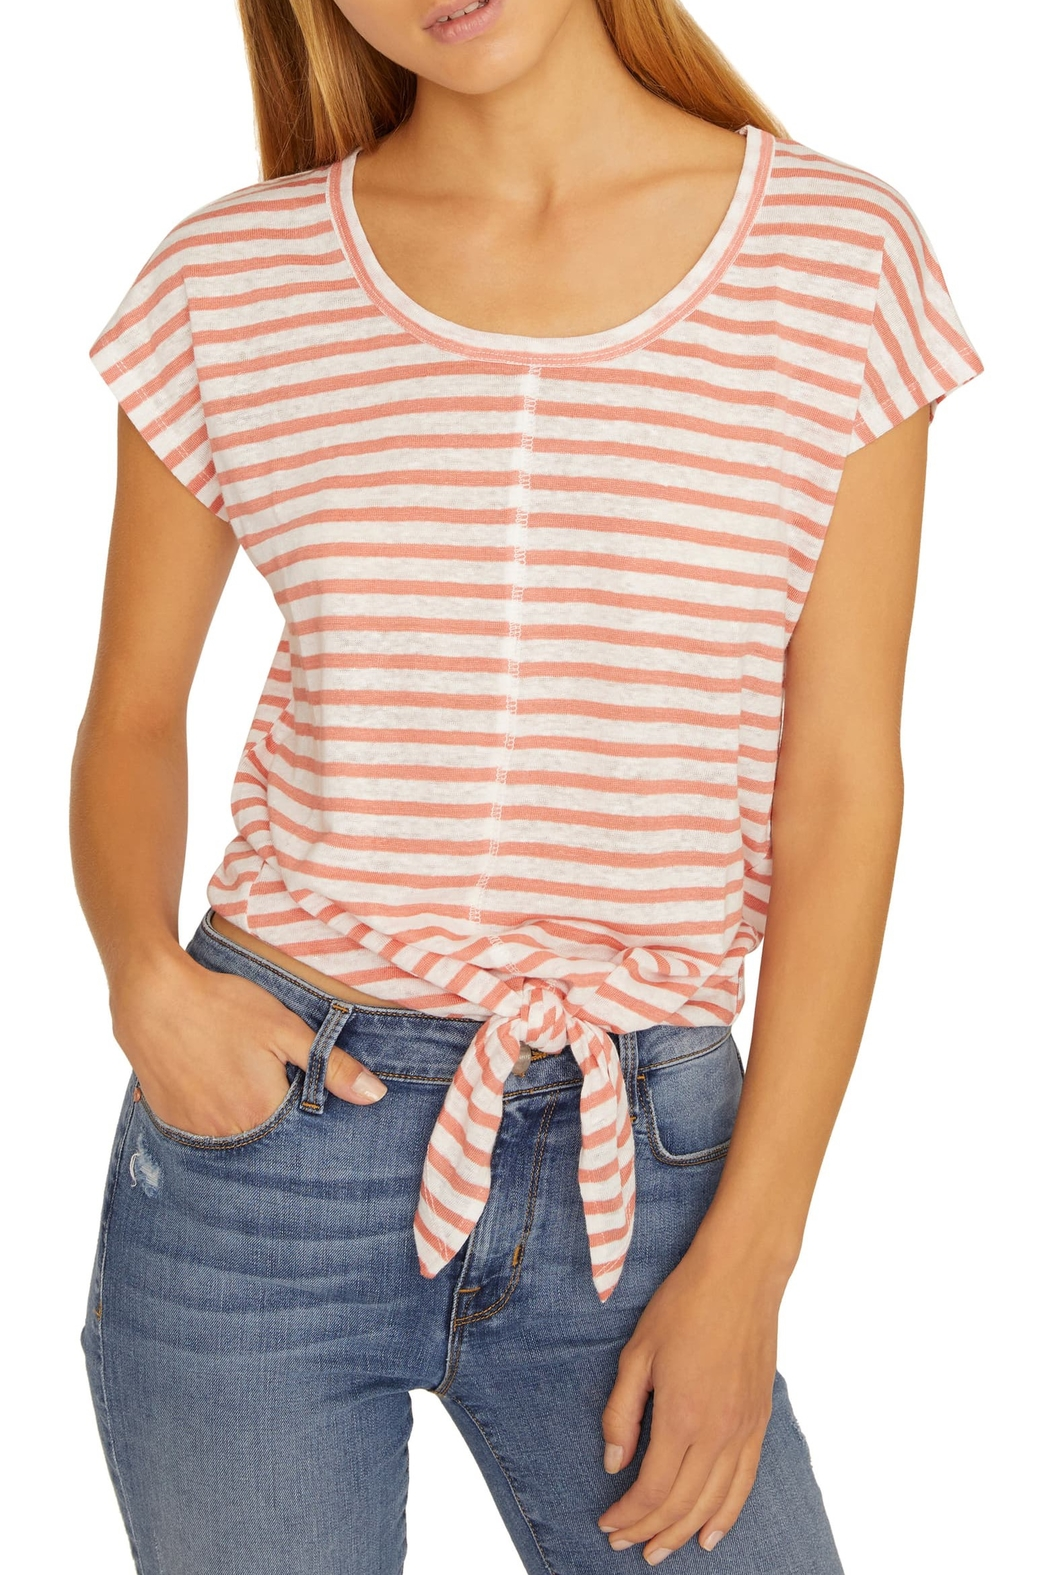 Sanctuary Maddy City Stripe Tee - Front Full Image